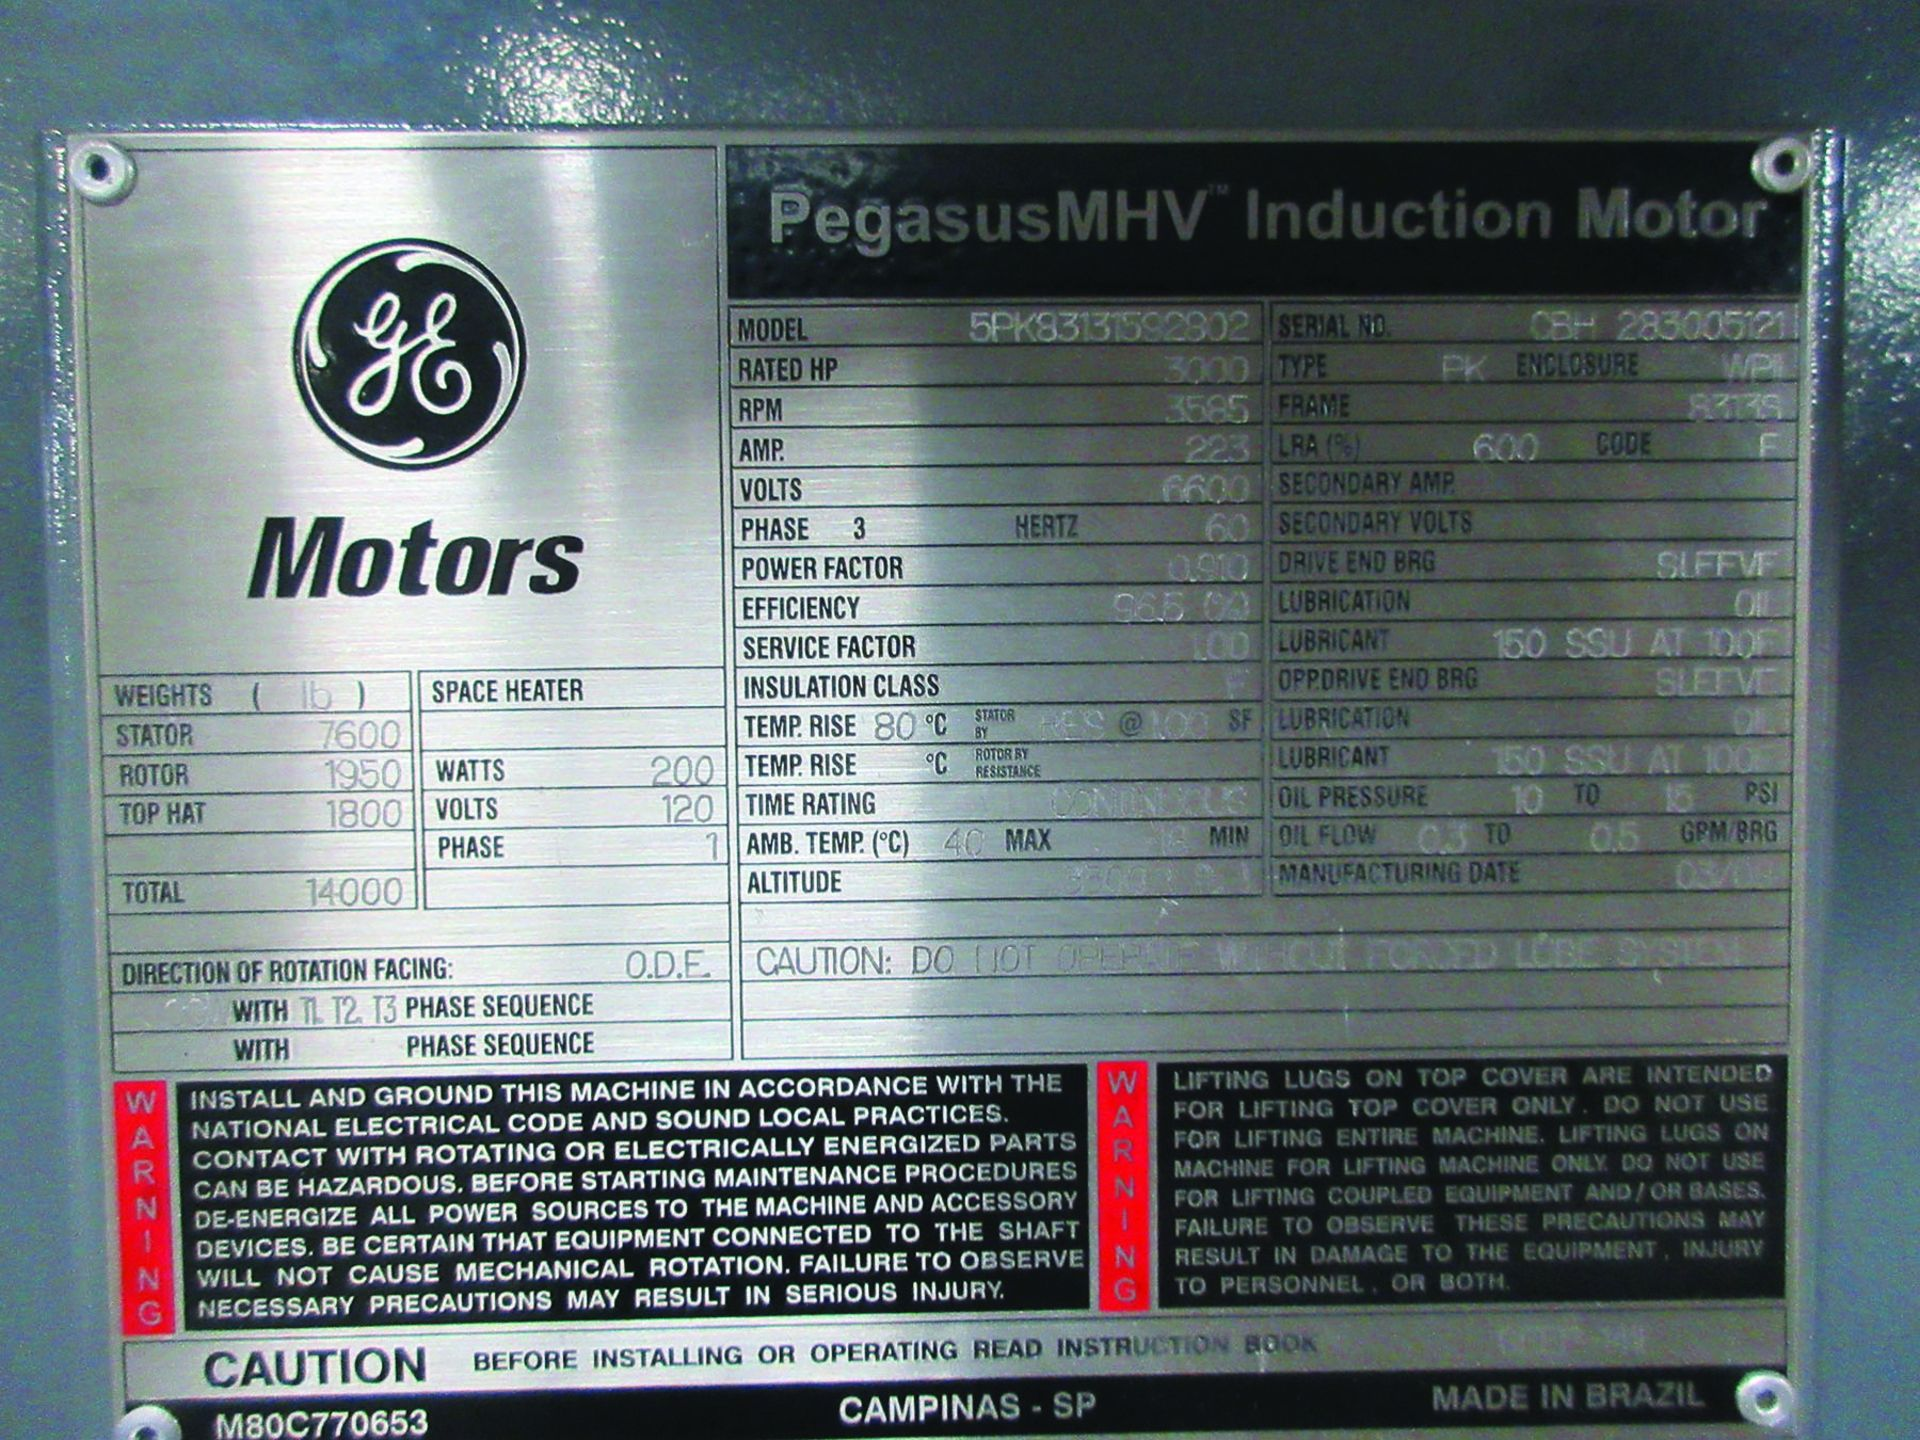 BOILER FEEDWATER BOOSTER PUMP SLED, GE 3,000 HP INDUCTION MOTOR 3585 RPM, 6600 VOLTS, 8313S FRAME, - Image 11 of 11